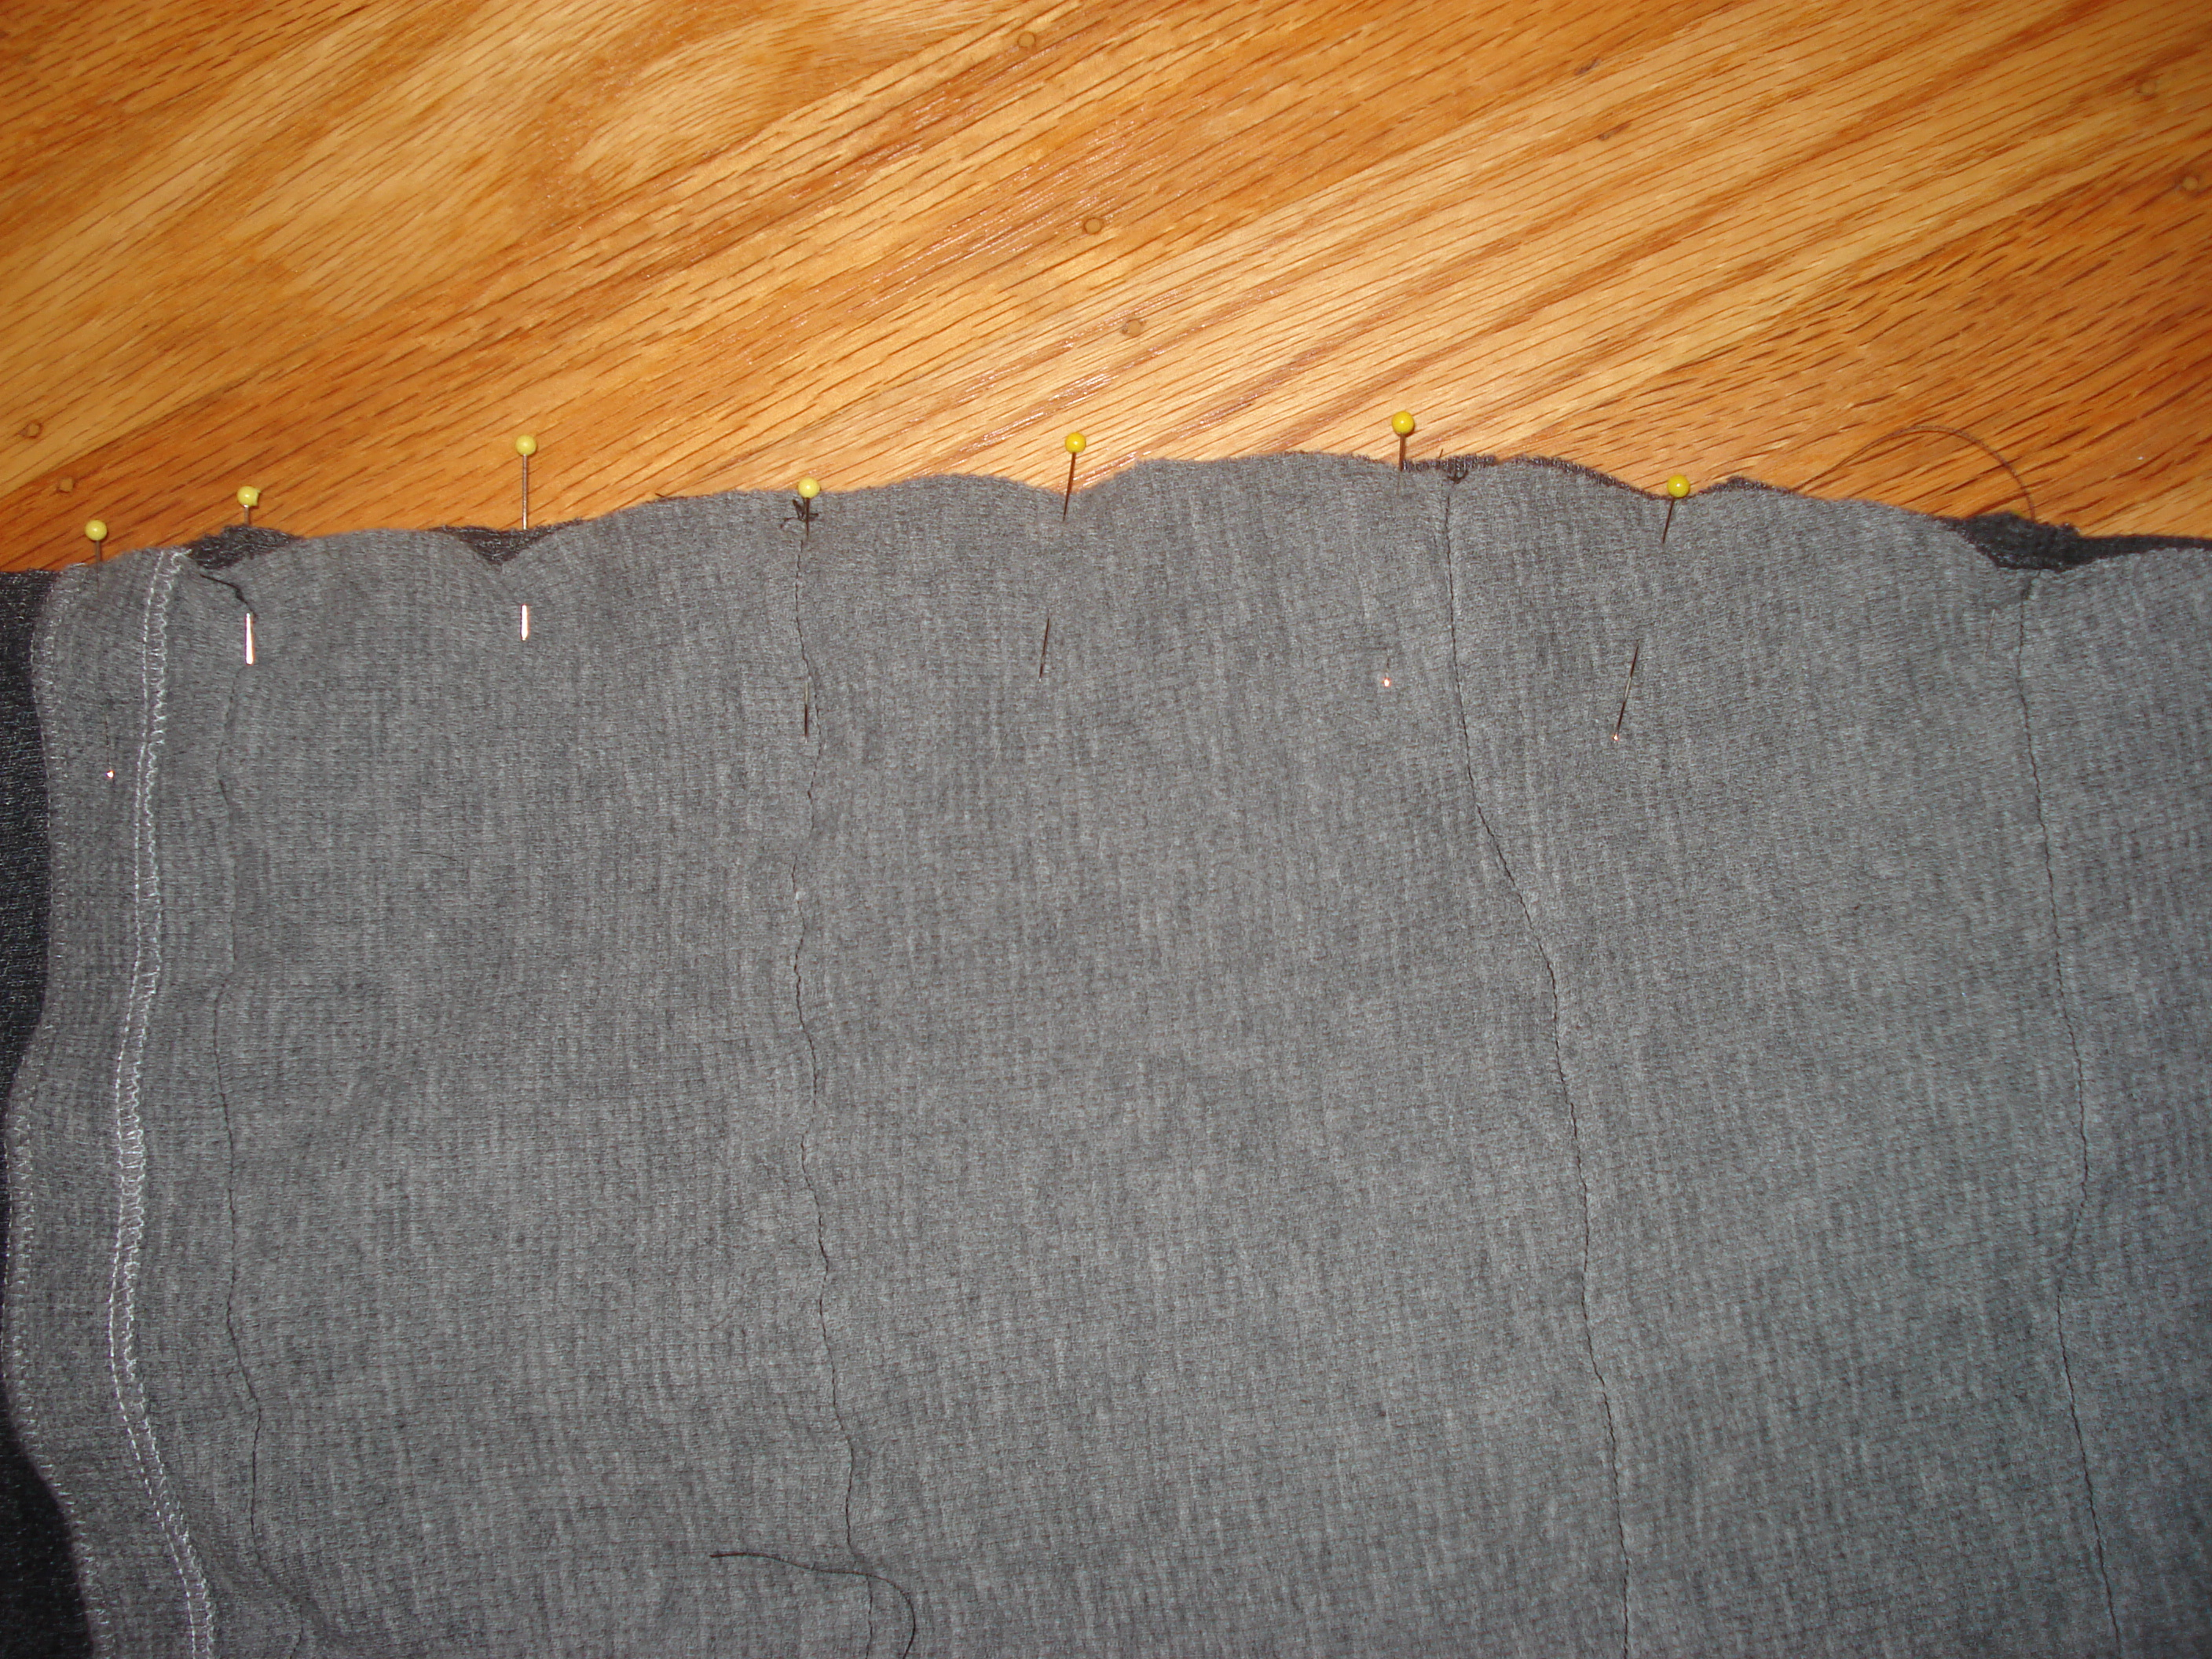 Picture of Attach Pieces, Sew Up Sides, and Enjoy!